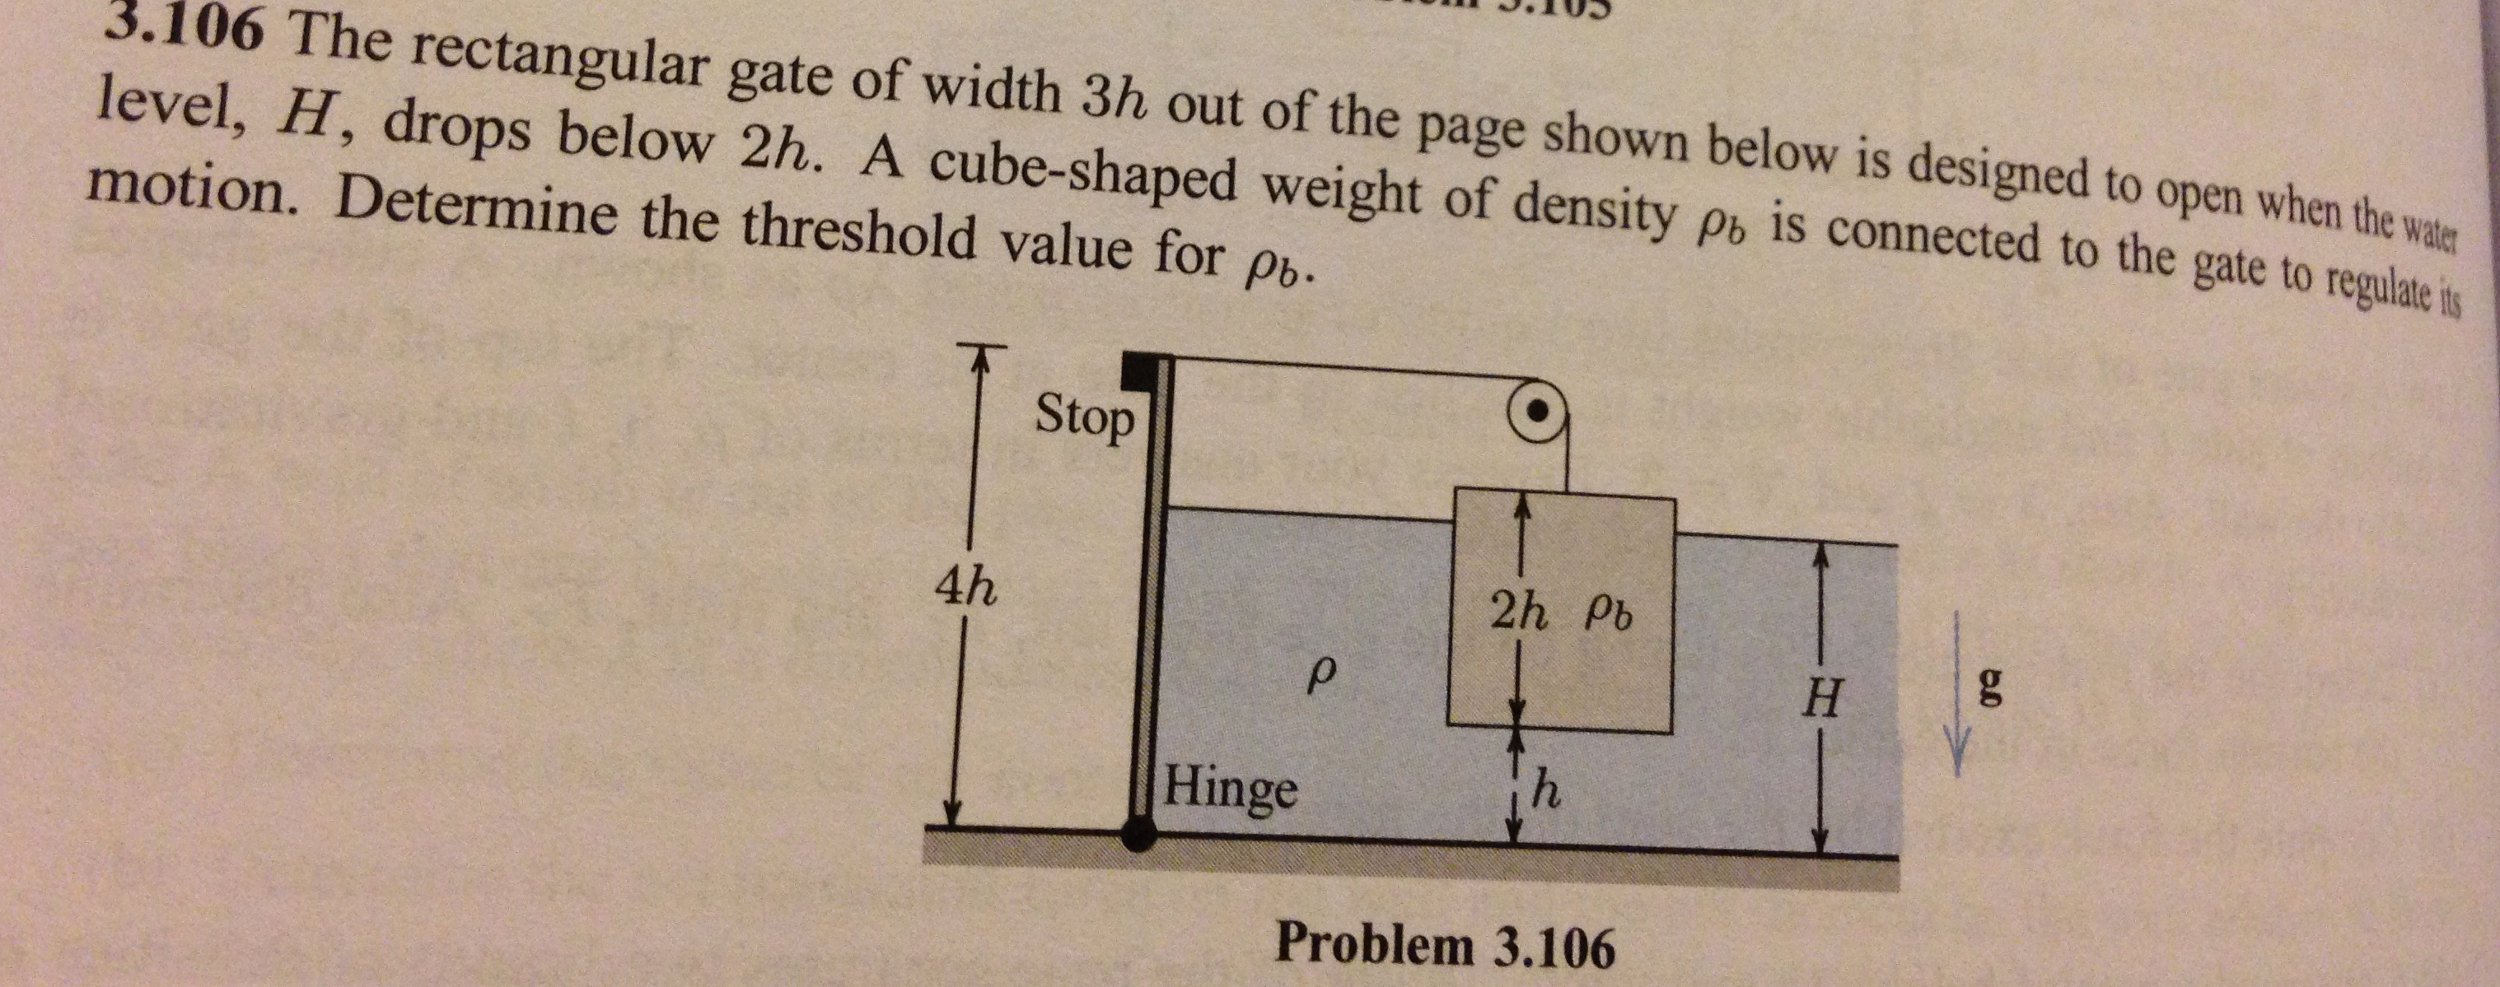 The rectangular gate of width 3h out of the page s